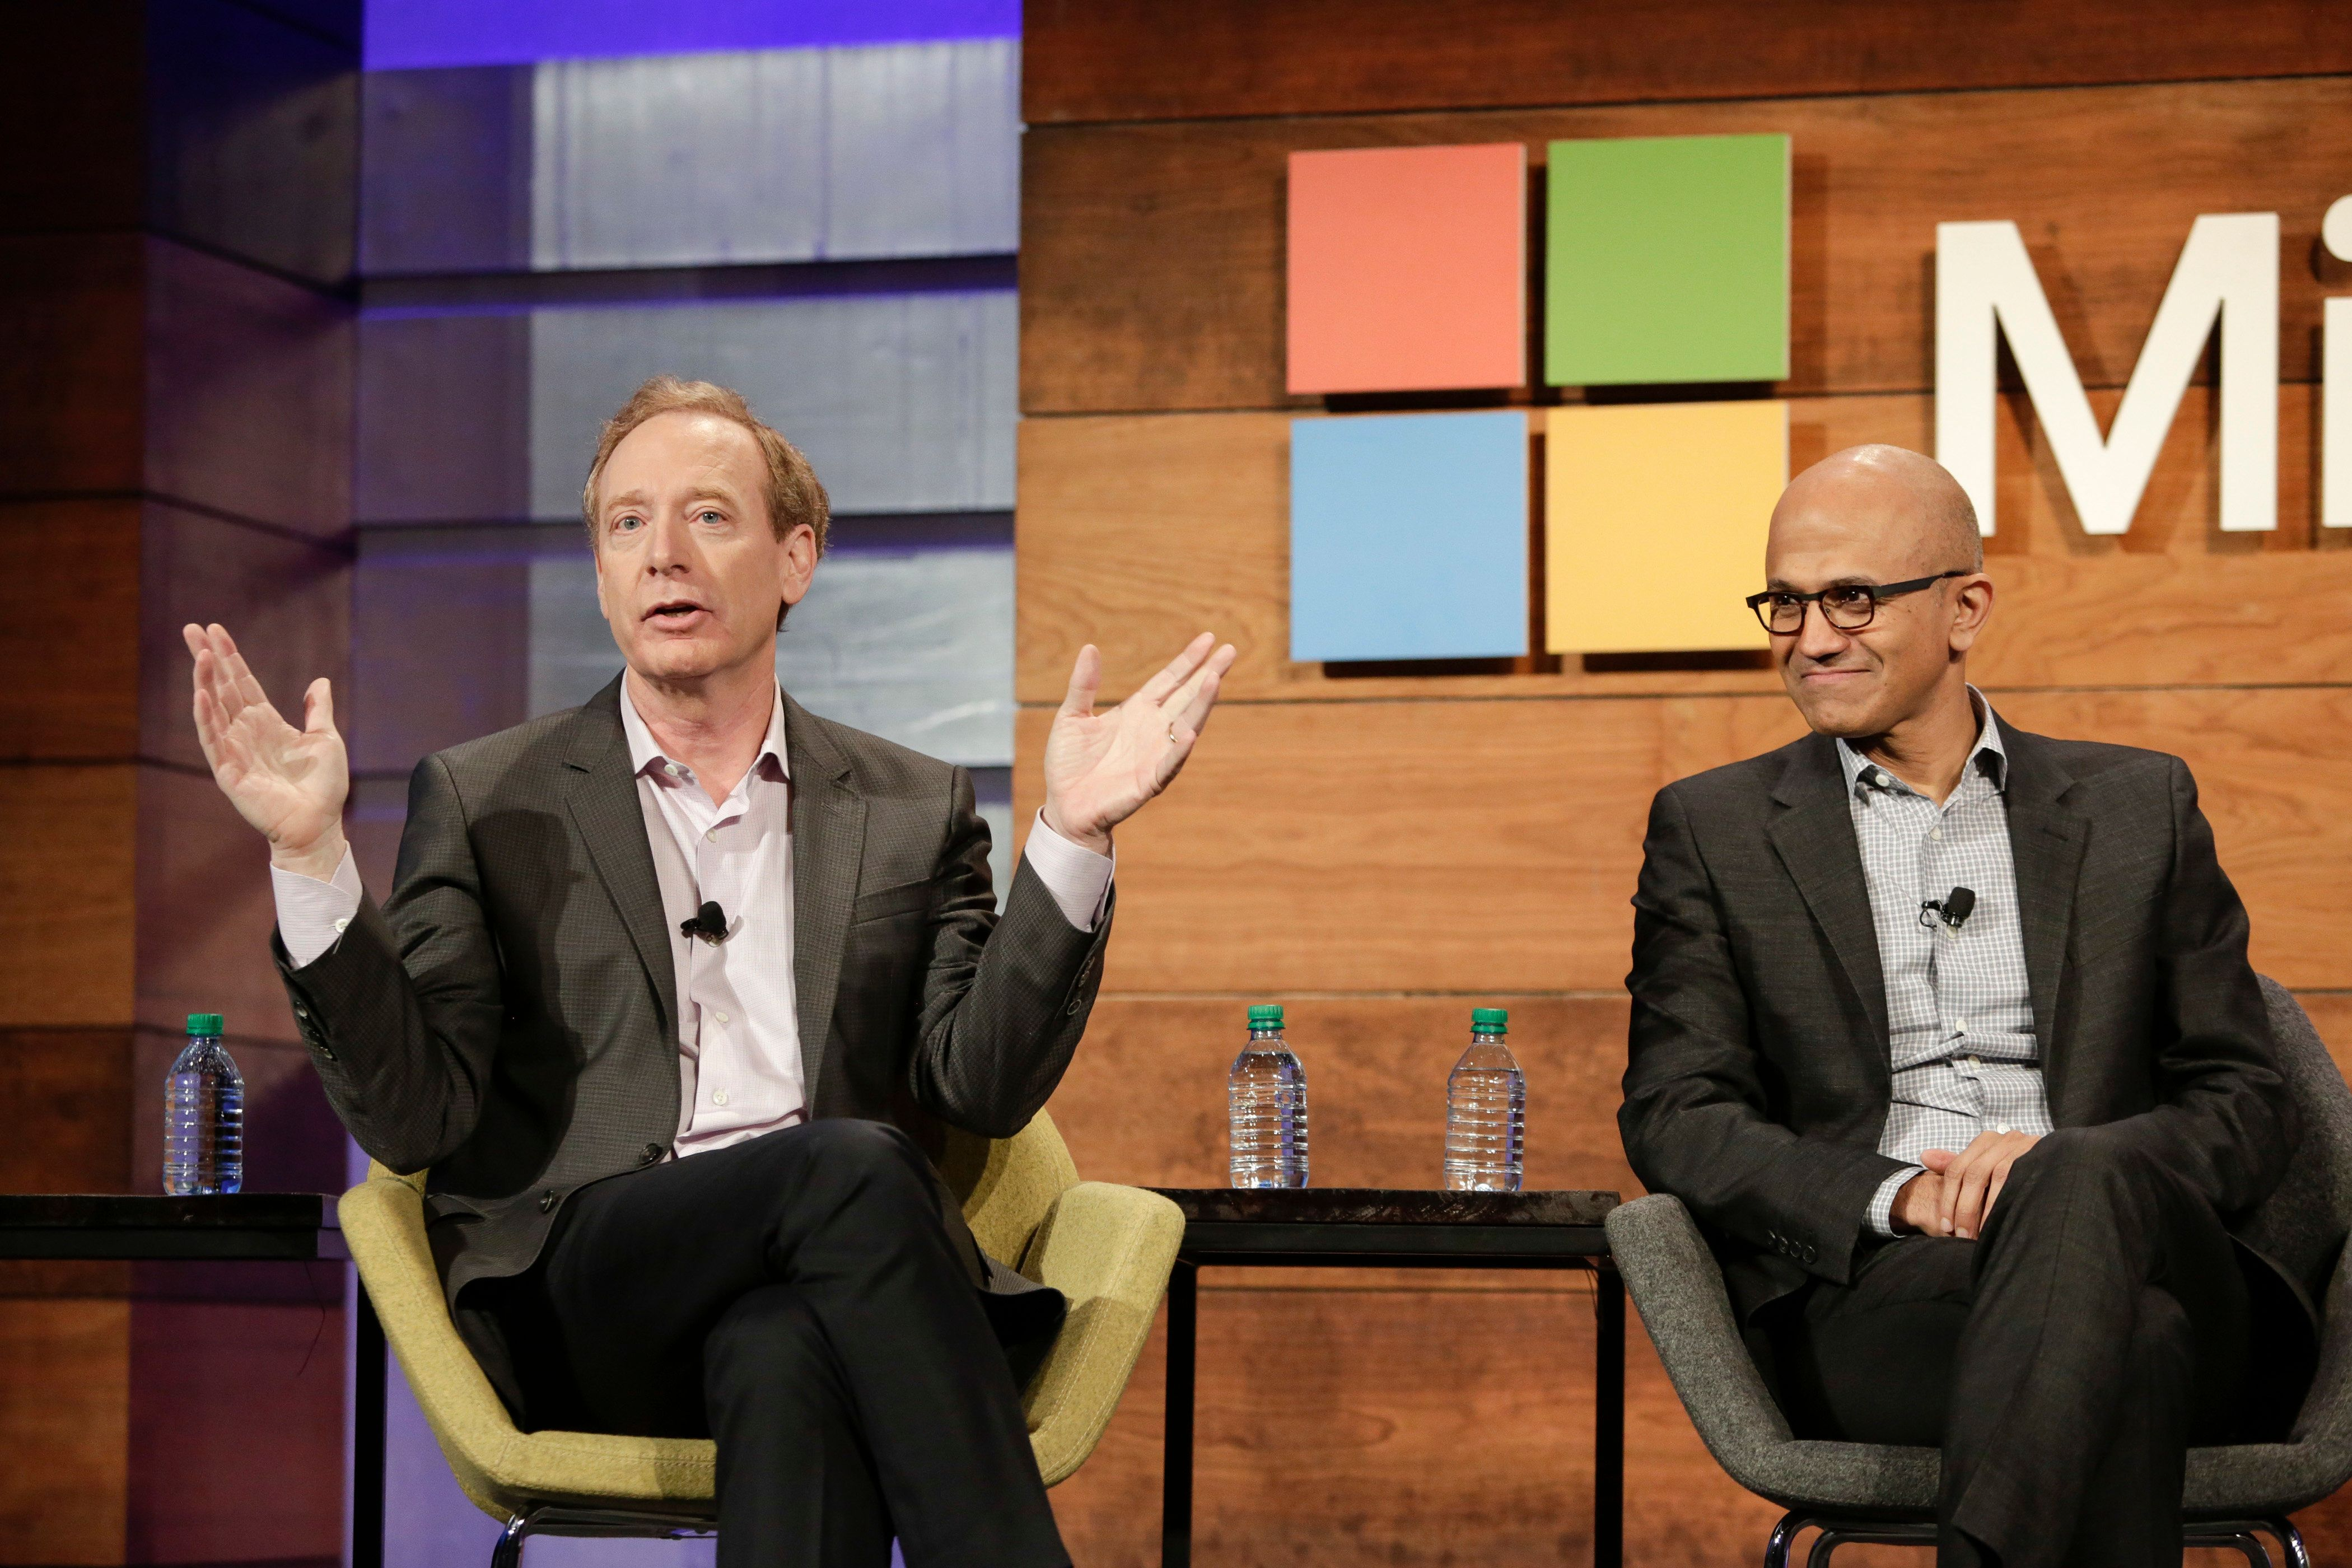 Brad Smith, President and Chief Legal Officer of Microsoft Corp., speaks as Satya Nadella, Chief Executive Officer, listens at the Microsoft Annual Shareholders Meeting in Bellevue, Washington on November 30, 2016.  / AFP / Jason Redmond        (Photo credit should read JASON REDMOND/AFP/Getty Images)